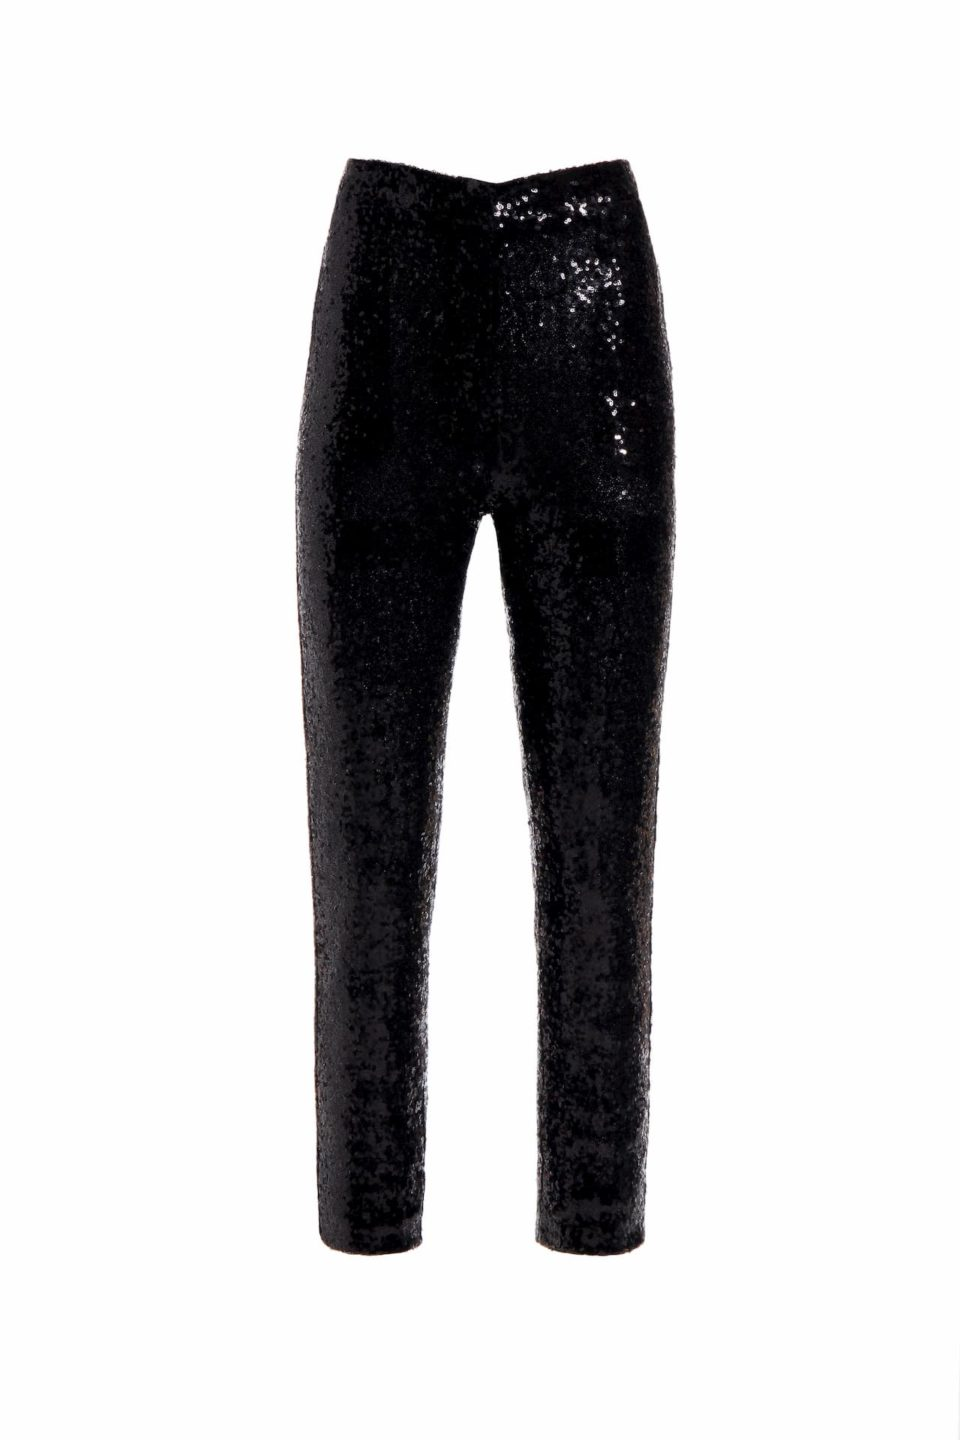 Kela black sequin cigarette trousers PS 2027